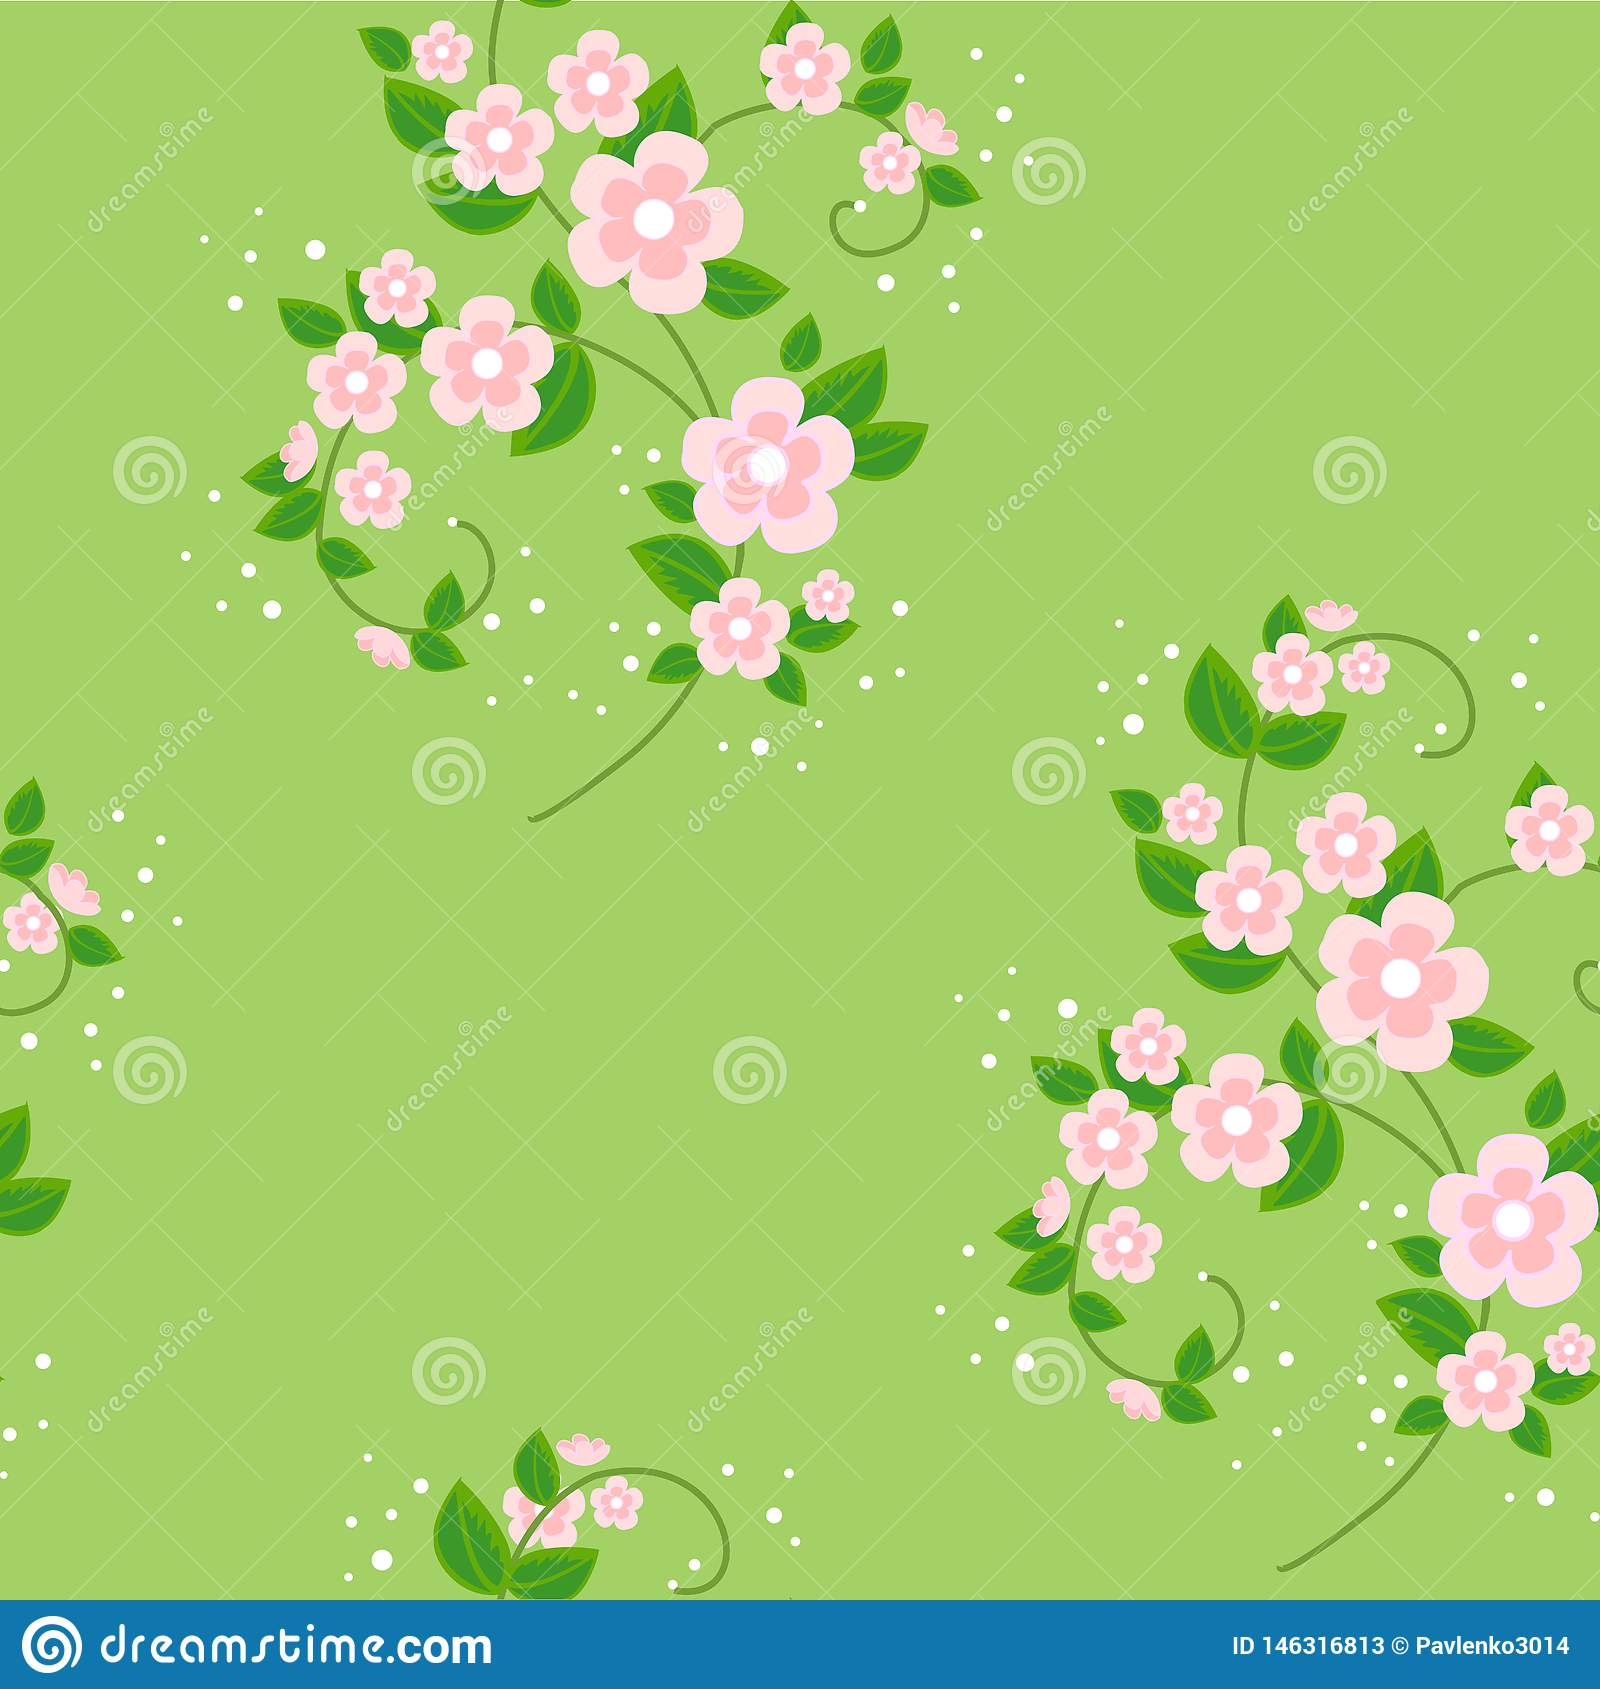 Bouquet of flowers. Spring beautiful background. Texture for wallpaper clothes. Vector illustration